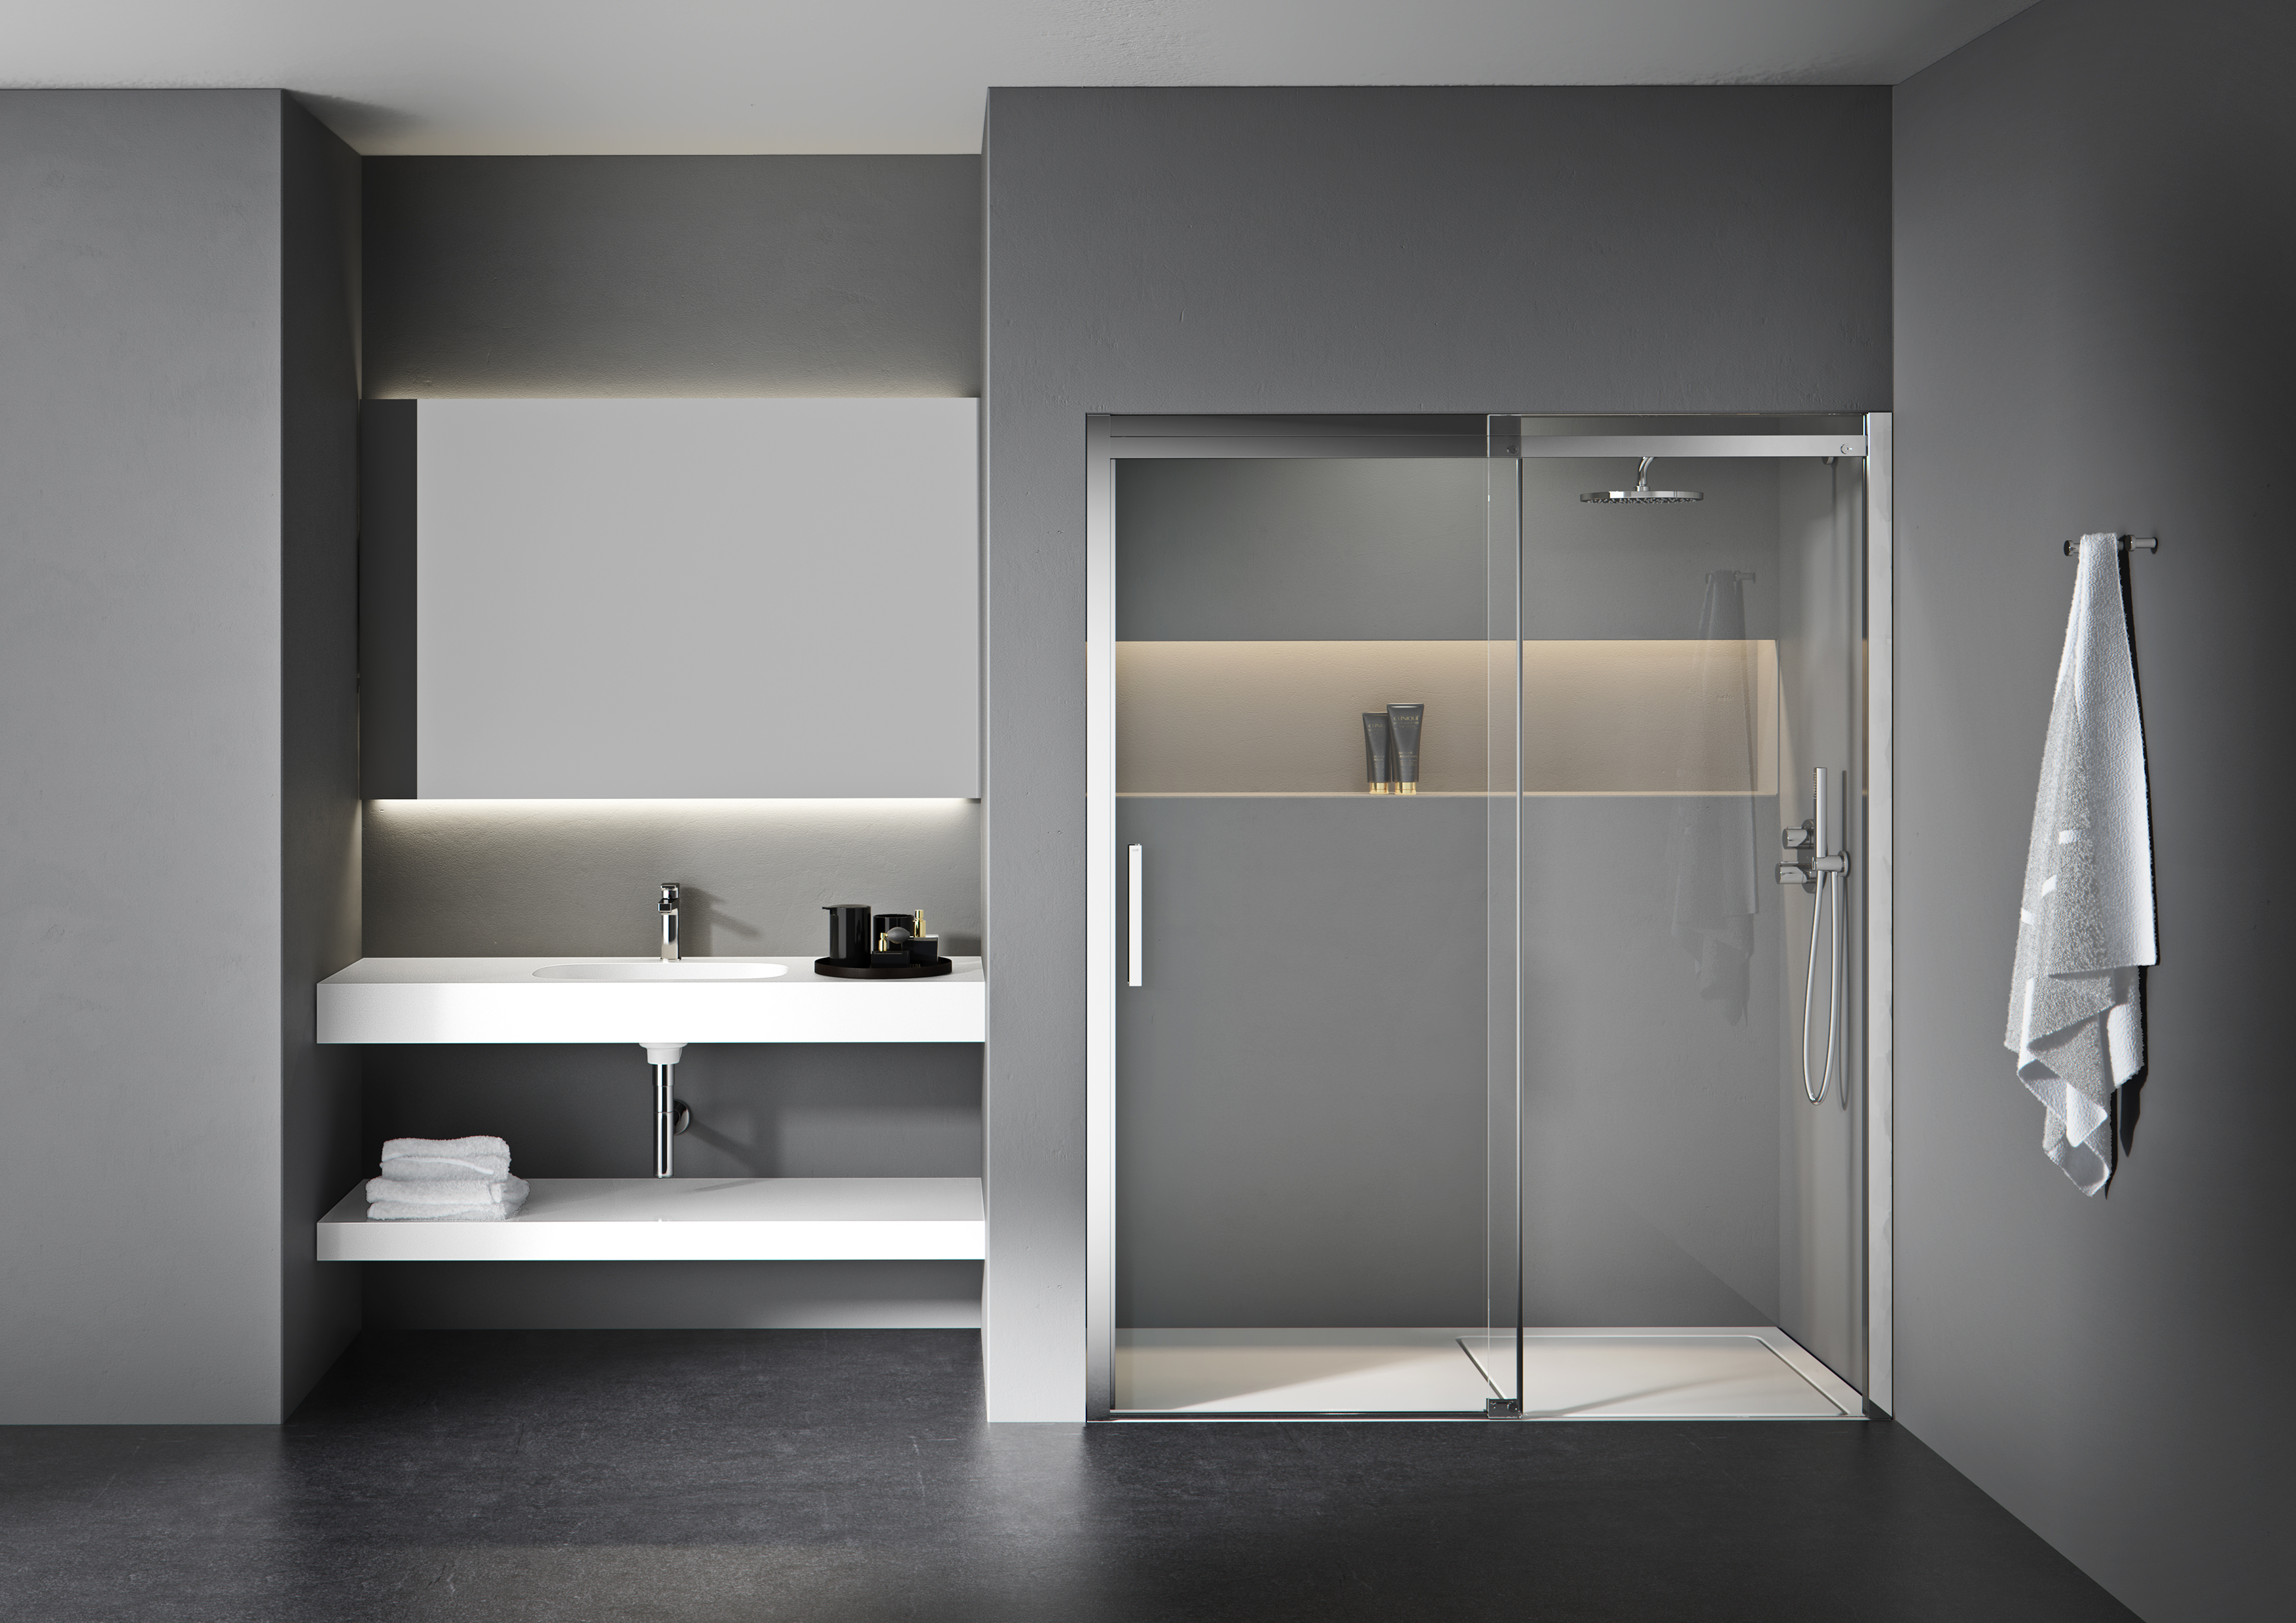 Shaping the Bathroom Space of the Future